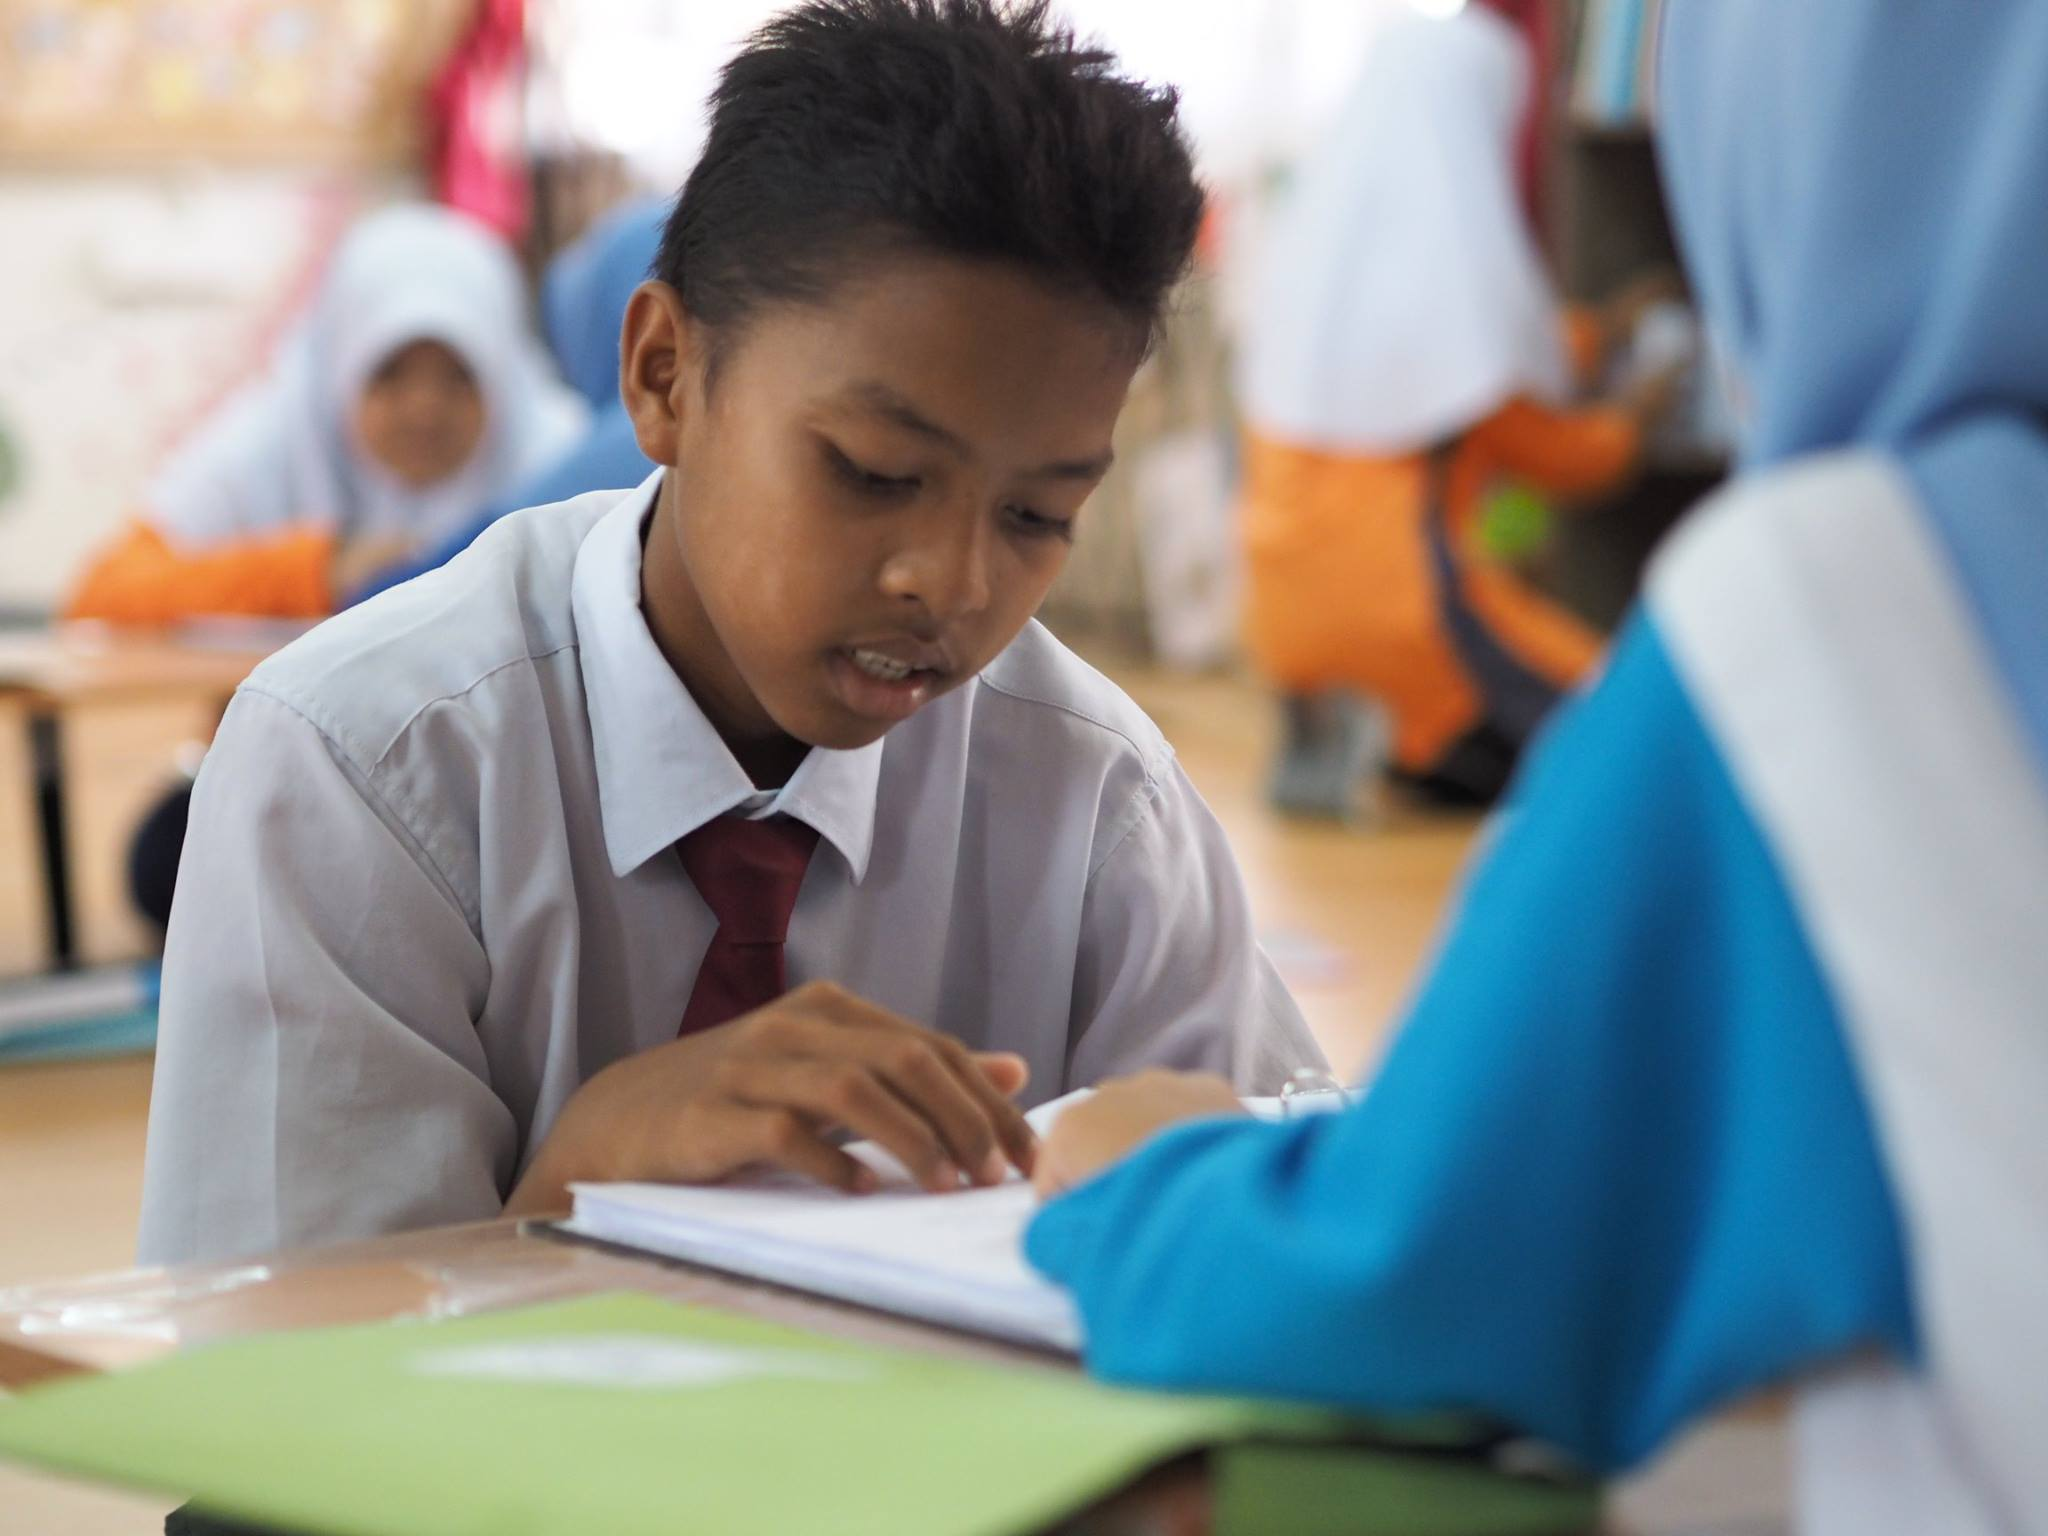 """""""The mentors confidence in using English improved. Though they are young, they were able to show patience and empathy when coaching their friends.""""  - Pn. Zuliani, SMK Bandar Baru Sentul"""